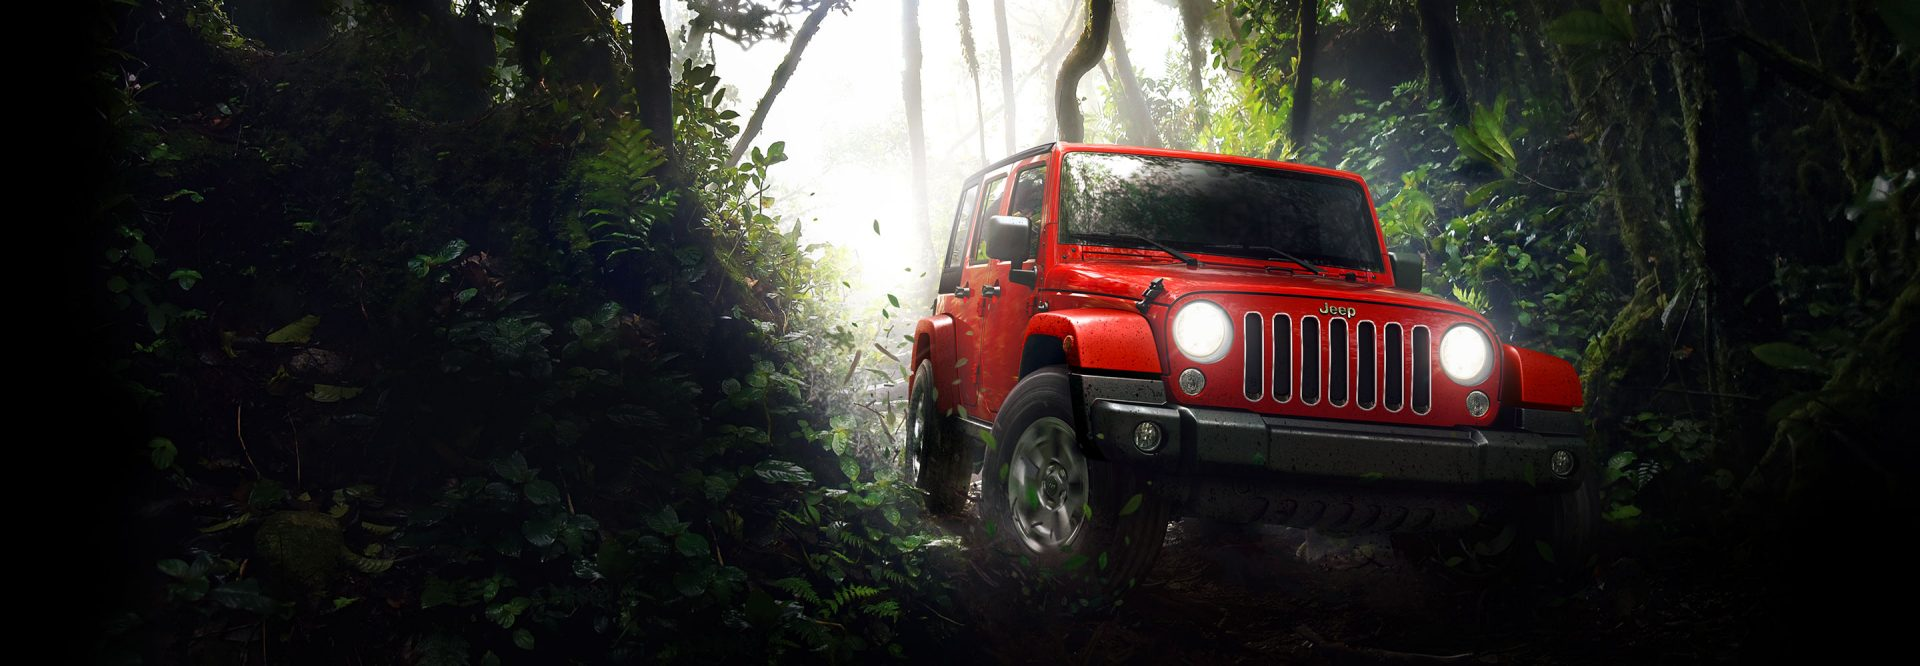 Jeep India Official Website Check Lineup Of Suvs Crossovers